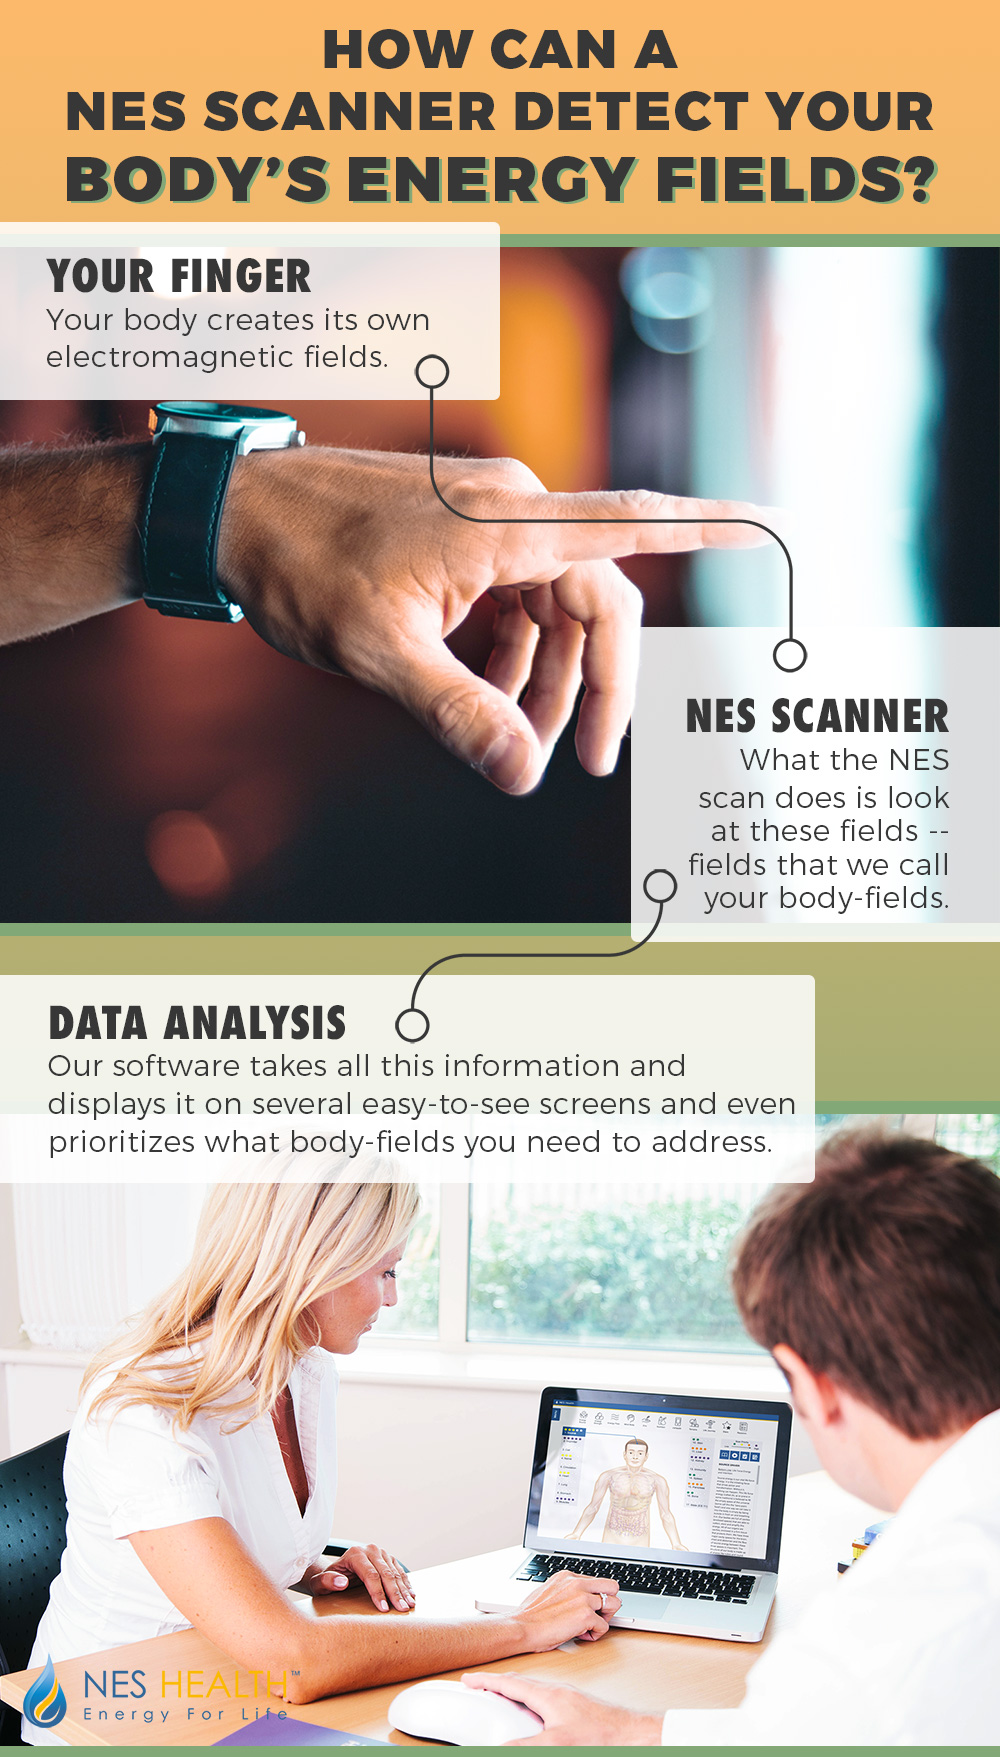 Nes-scanner-detect-body-field-infographic